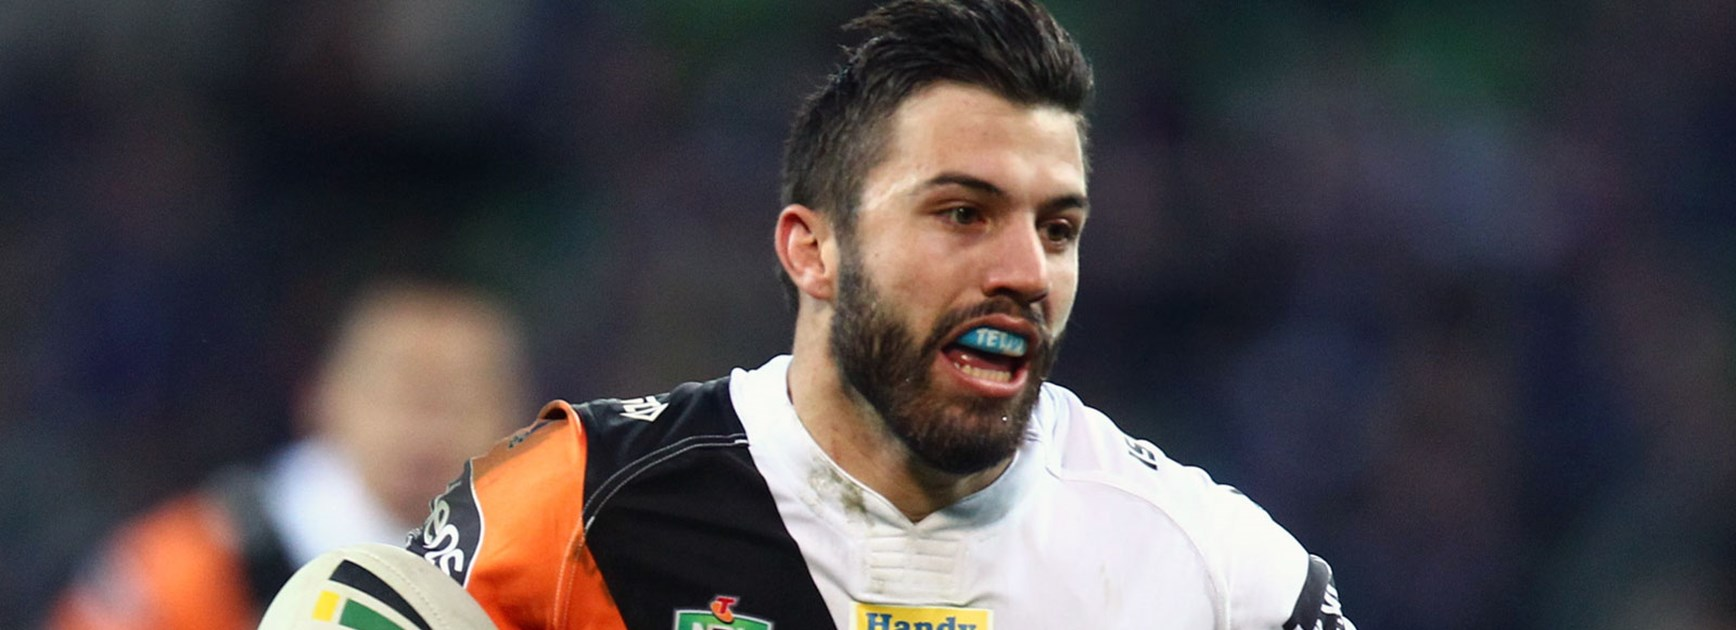 Wests Tigers teammates believe James Tedesco should be in the NSW side for Origin III.